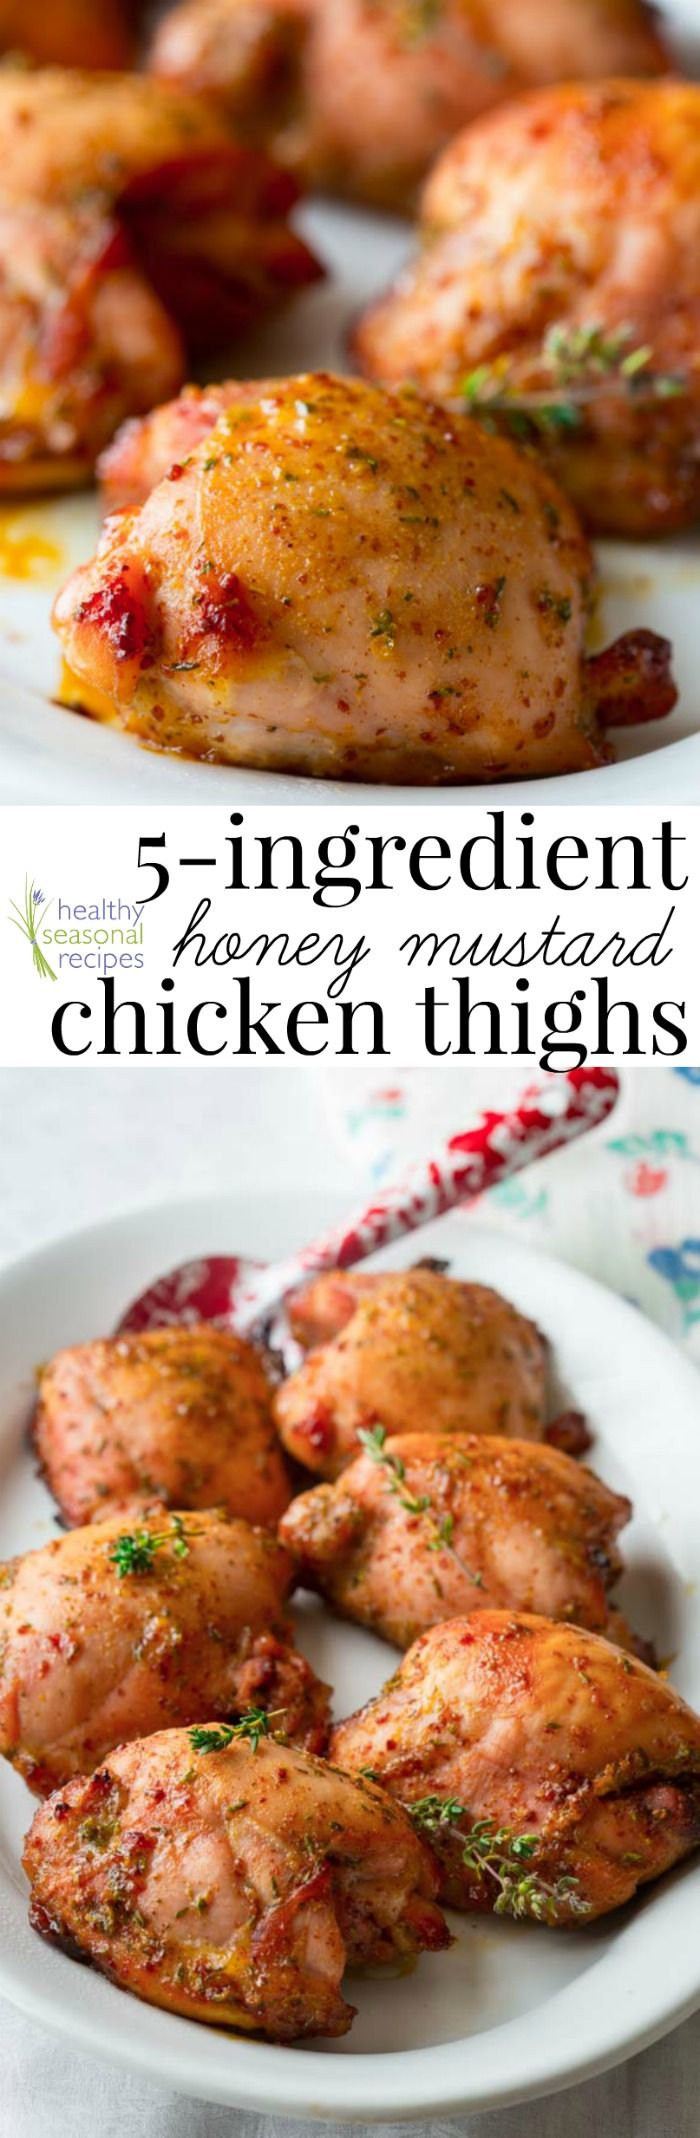 5 ingredient Honey Mustard Chicken Thighs. A super easy weeknight meal that the whole family will love. And they are naturally gluten-free! By Healthy Seasonal Recipes | @healthyseasonal